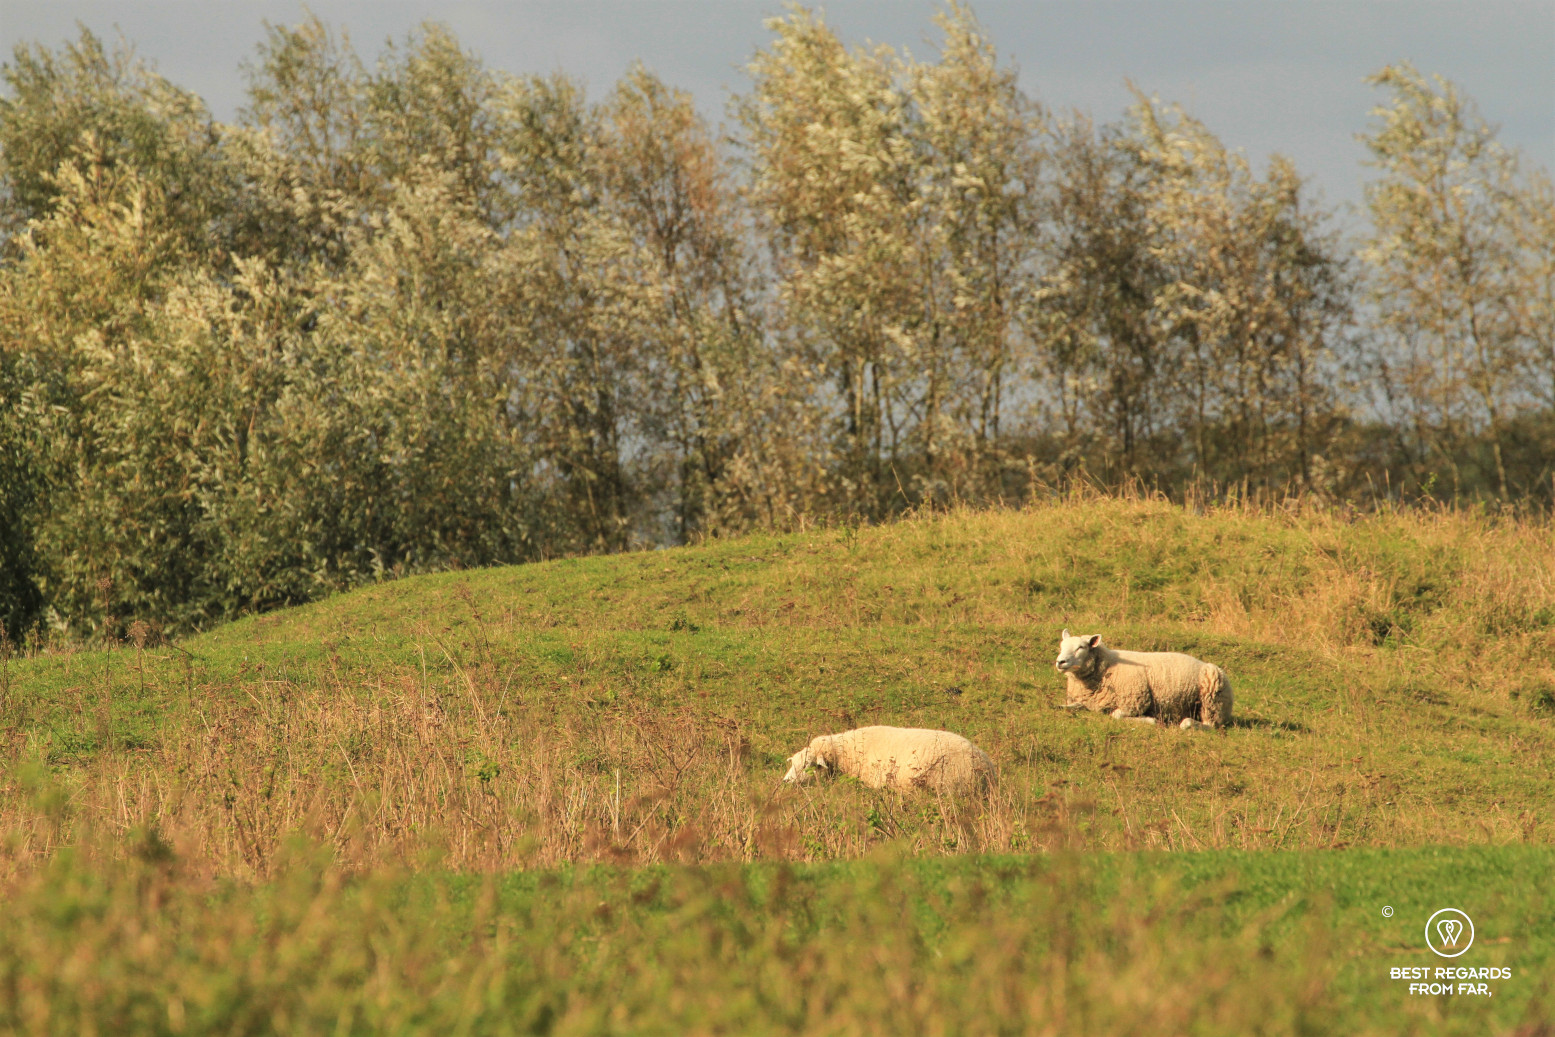 Two sheep in a hilly field in Belgium